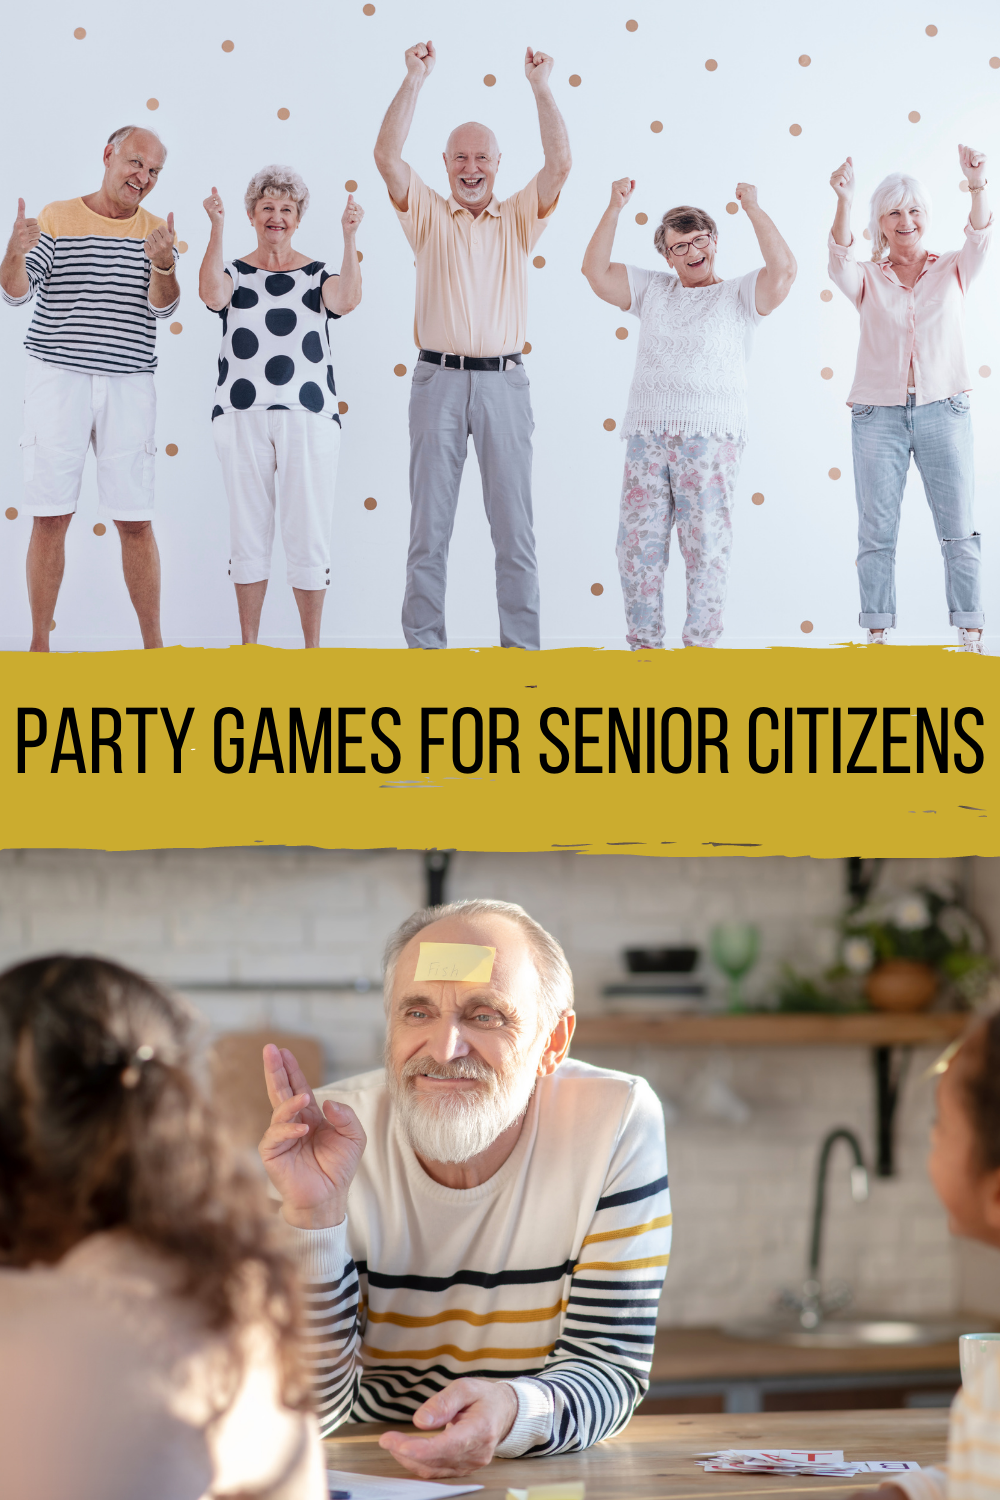 Party Games for Senior Citizens